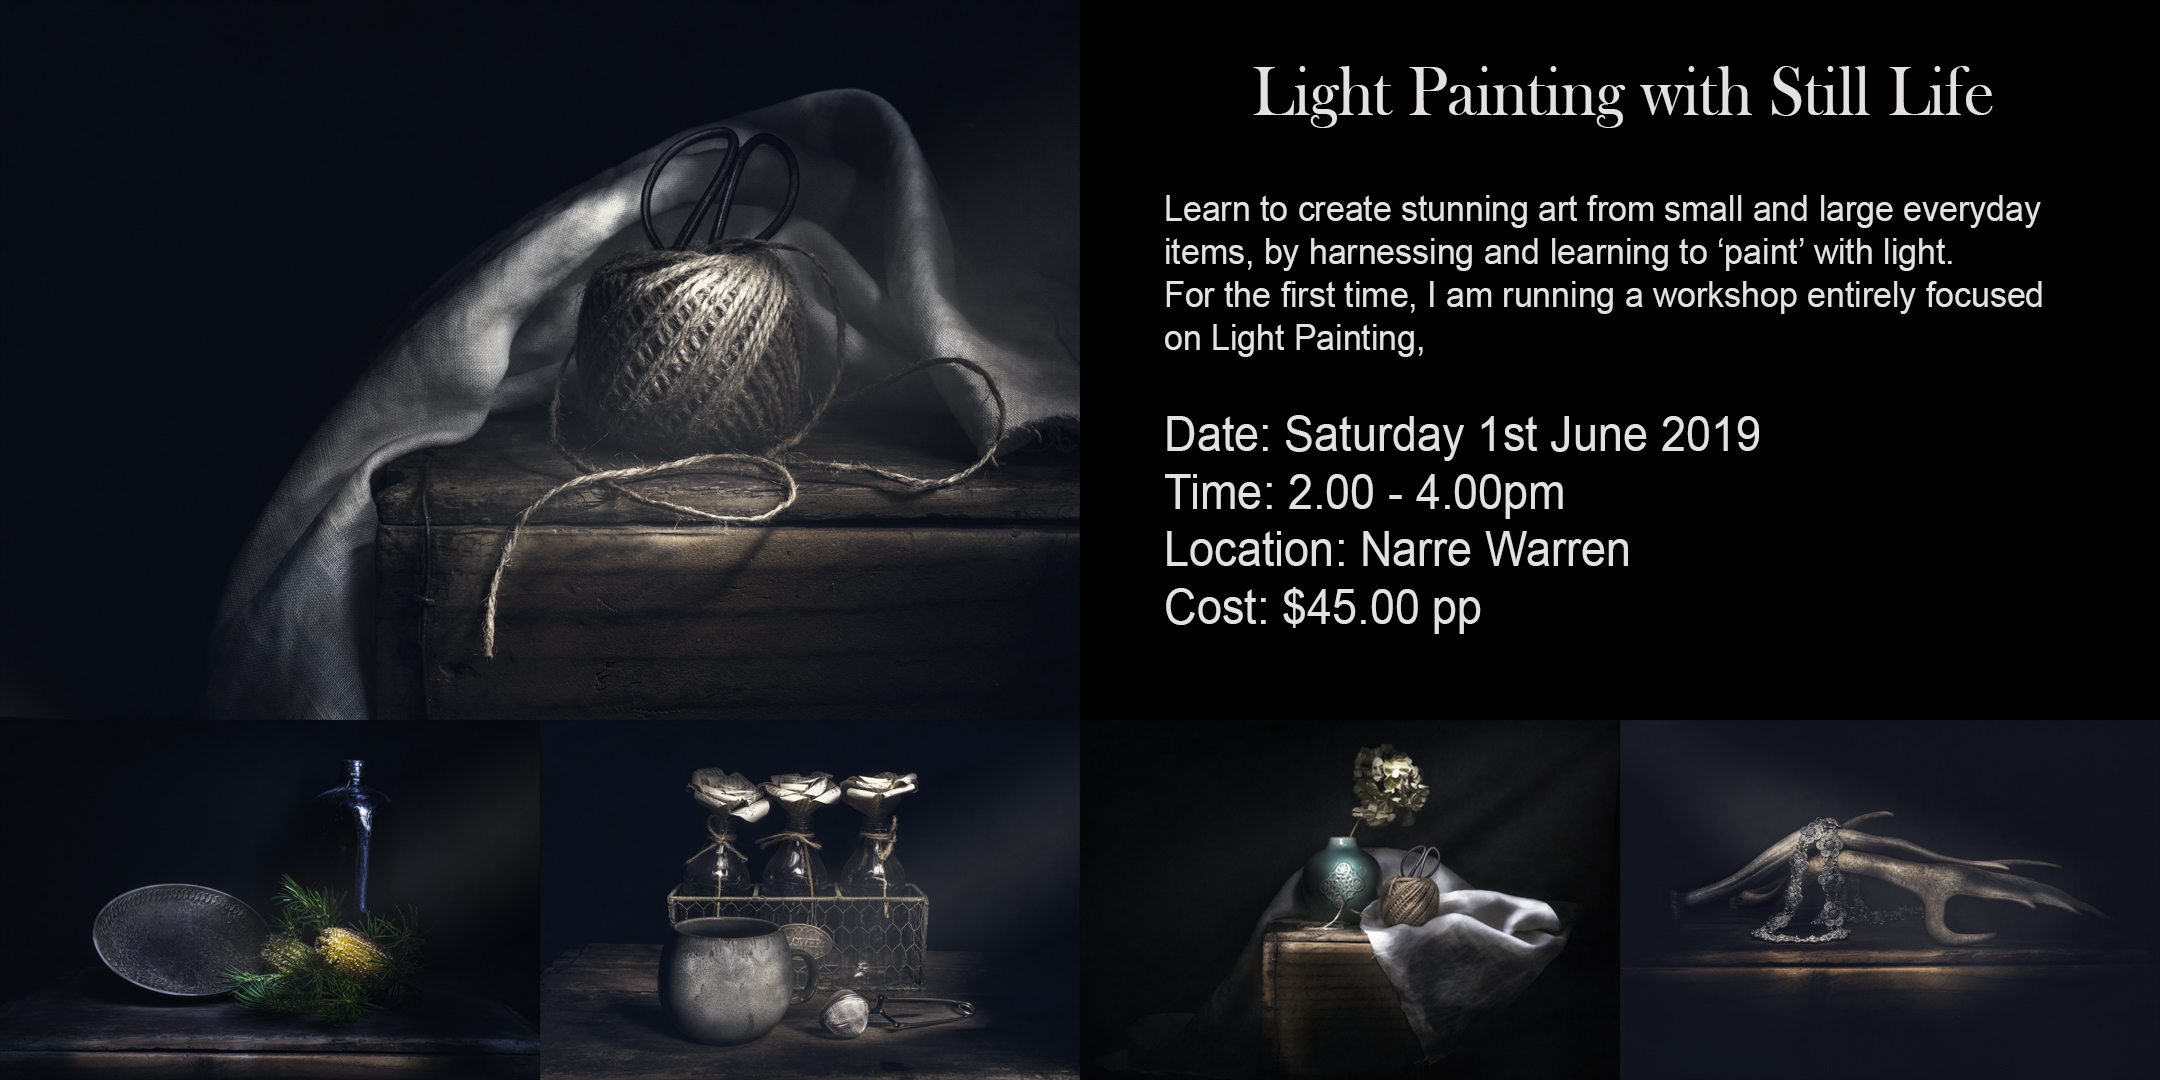 Light Painting Wshop advert.jpg